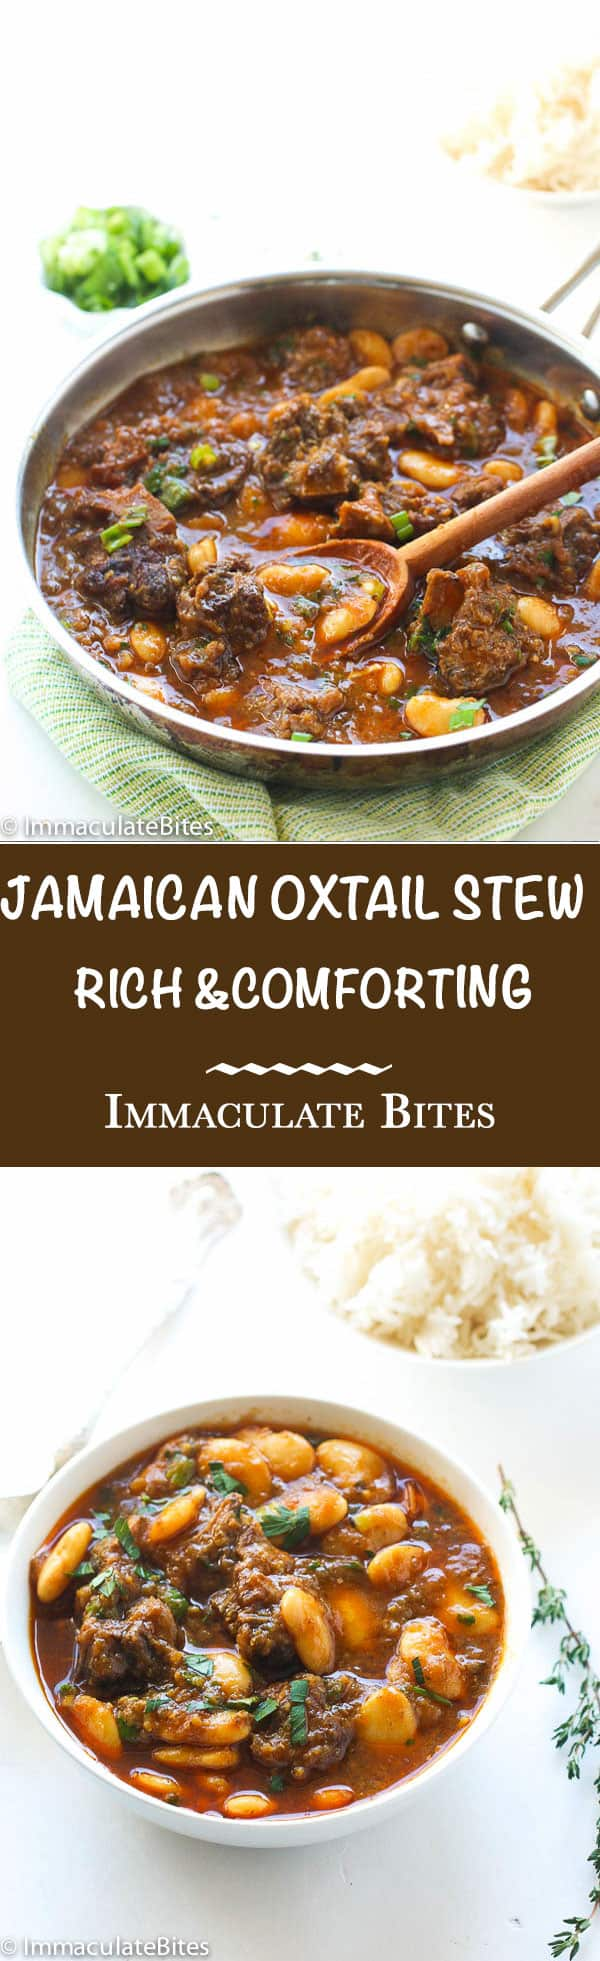 JAMAICAN-OXTAIL-STEW